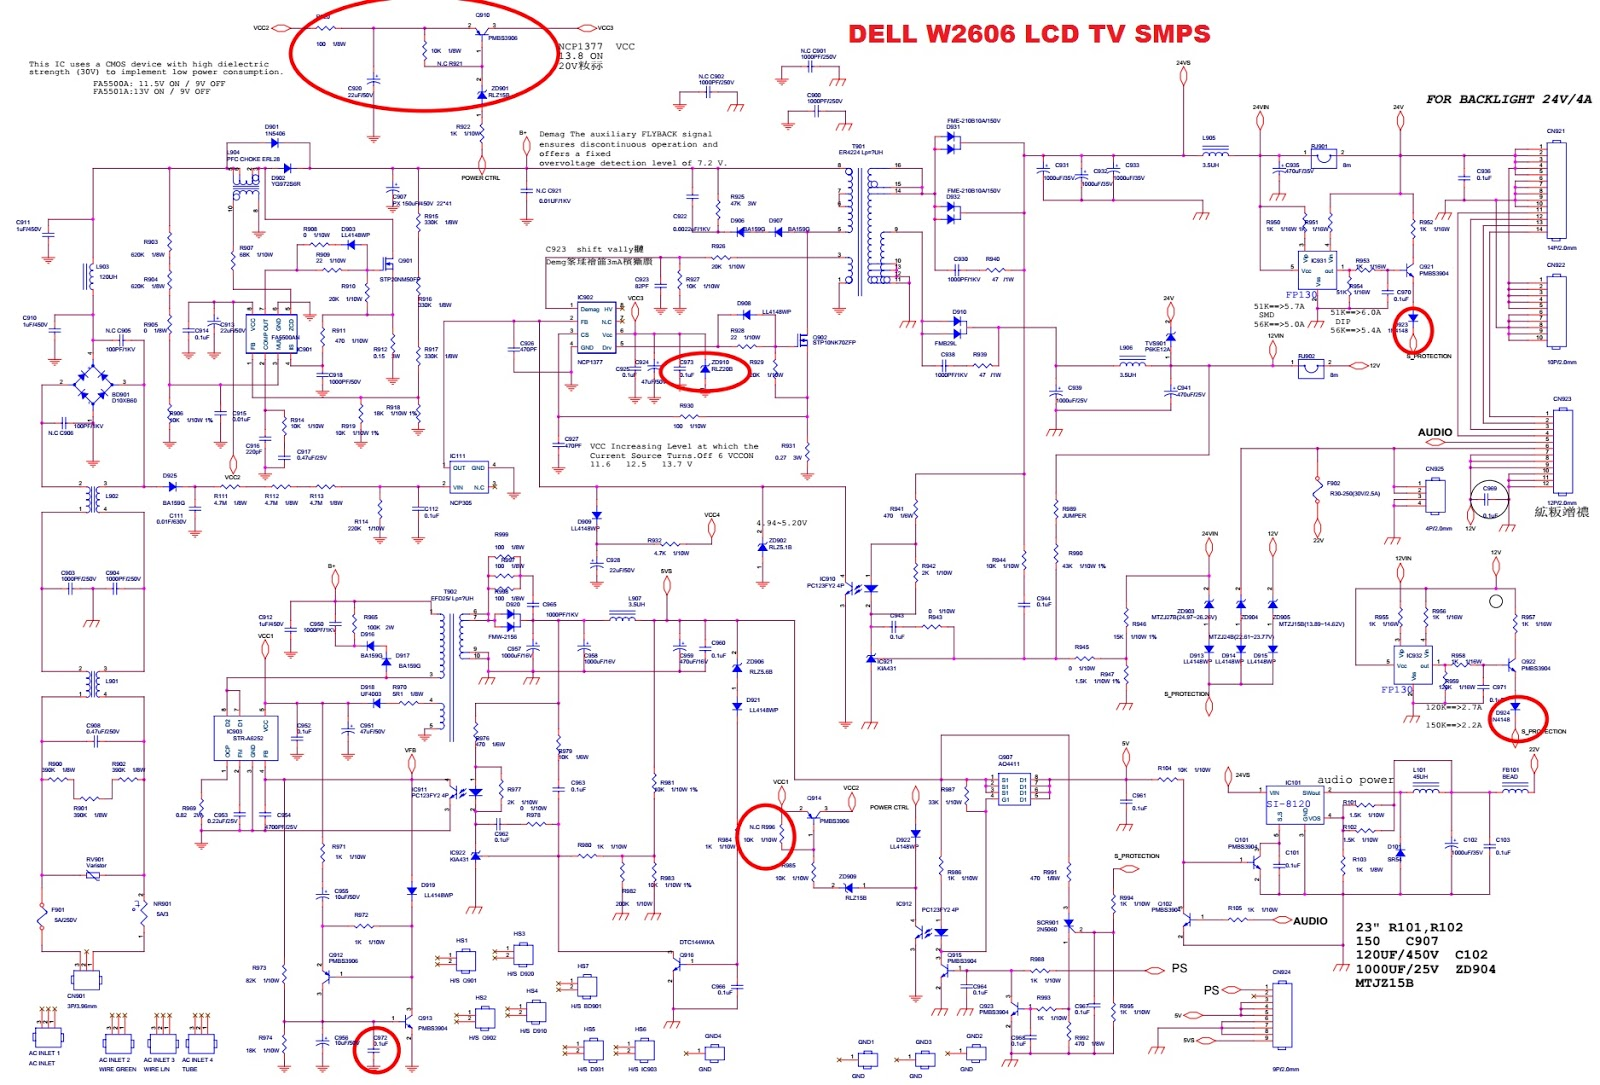 Dell Smps Schematic Quick Start Guide Of Wiring Diagram Schema Circuit Pa12 19v Notebook Adapter 1d07012 3 Lcd Tv W2607 And W2606 Rh Electronicshelponline Blogspot Com Switch Mode Power Supply